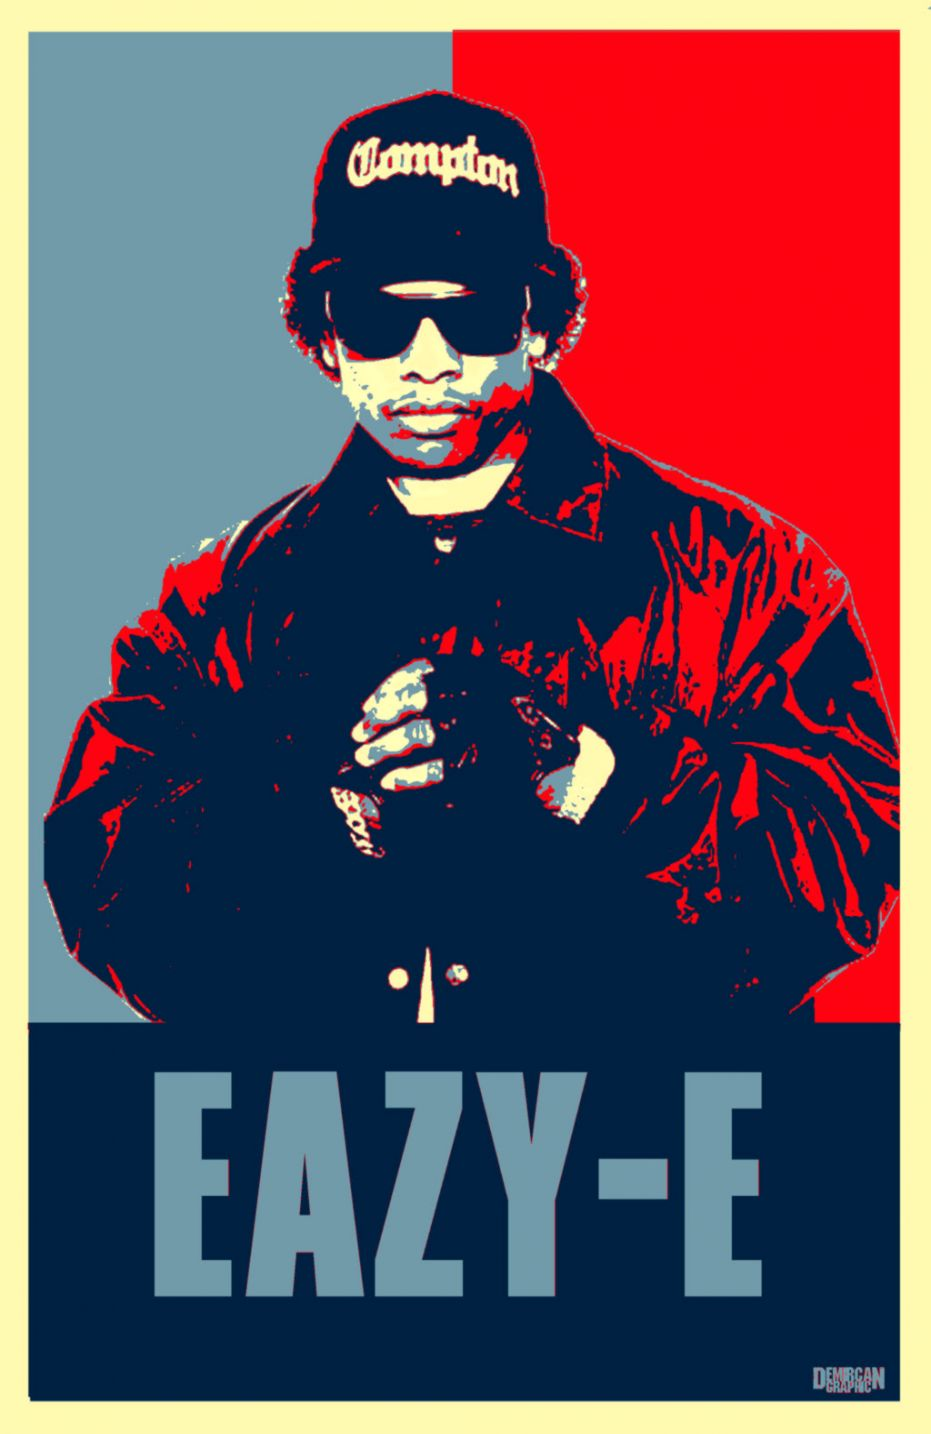 Eazy E Wallpaper Nasty Wallpapers 931x1434